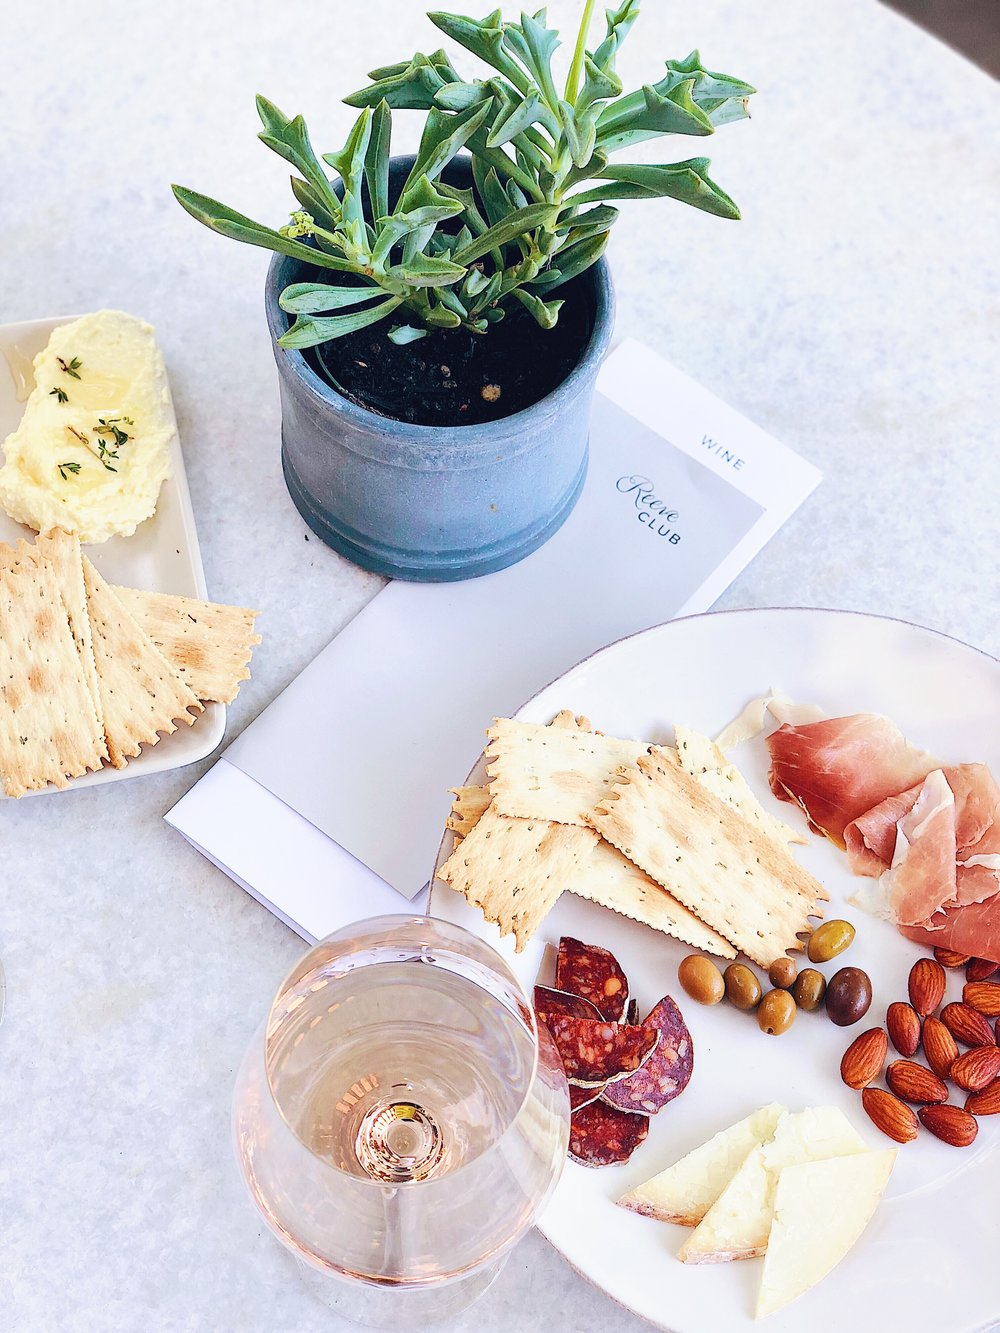 Charcuterie At Reeve Wines